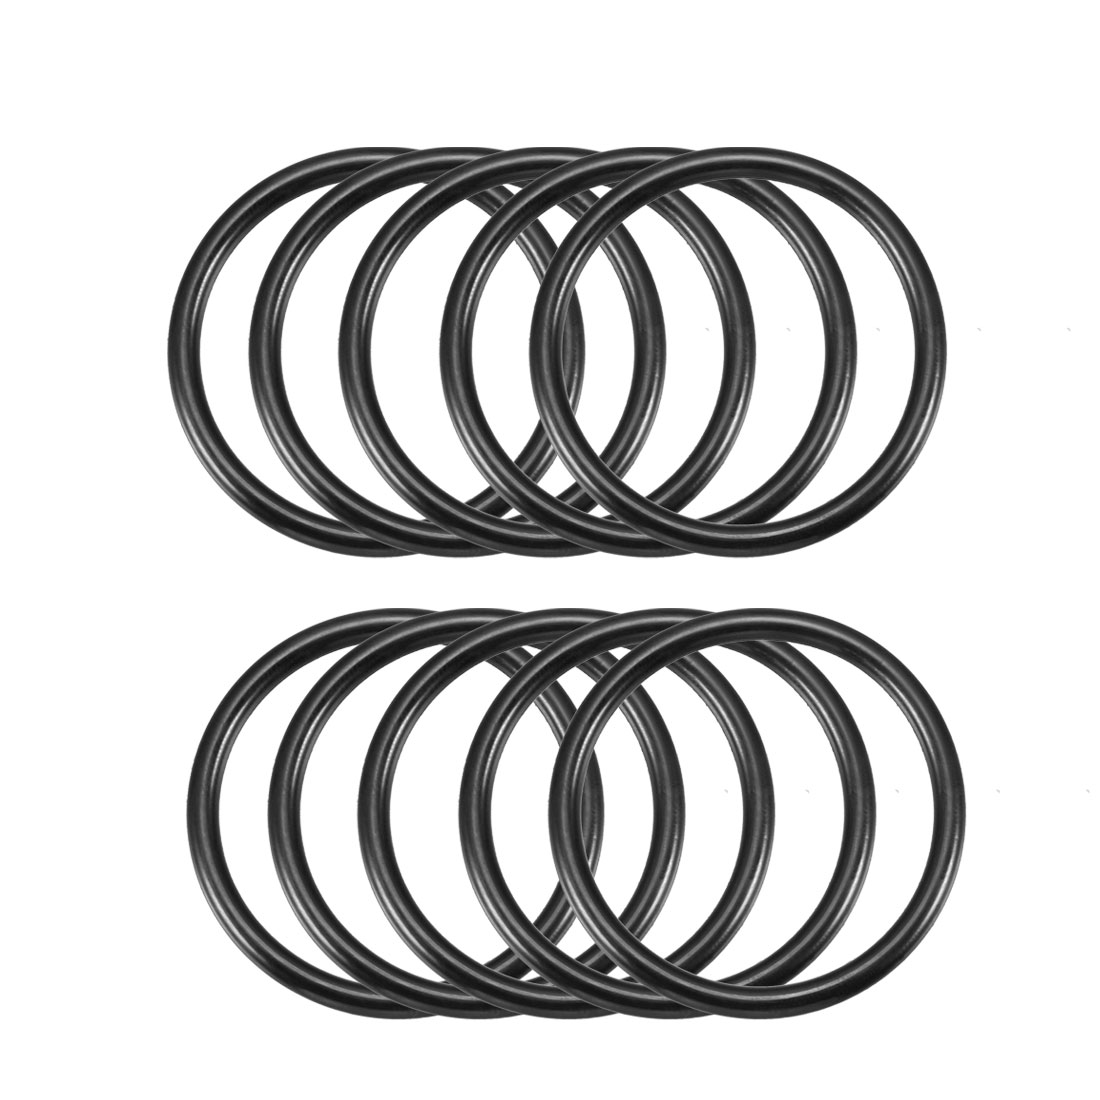 10 Pcs Metric O Rings Black Nitrile Rubber 45mm OD 3.5mm Thick